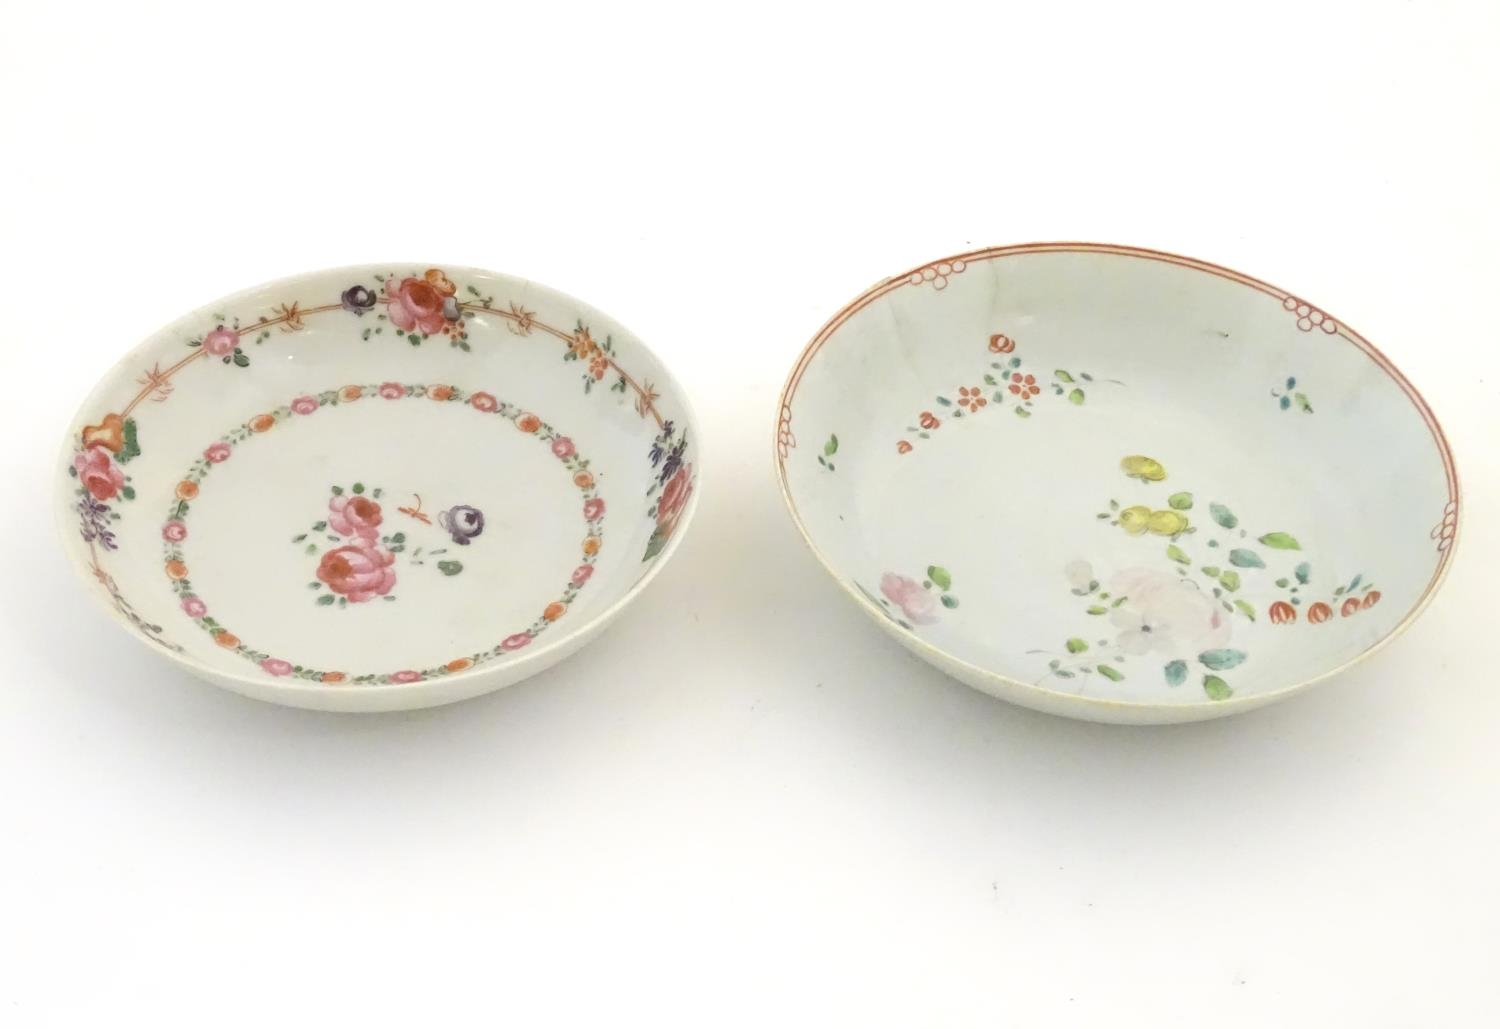 A New Hall style saucer with hand painted floral and foliate detail. Together with another. - Image 8 of 18